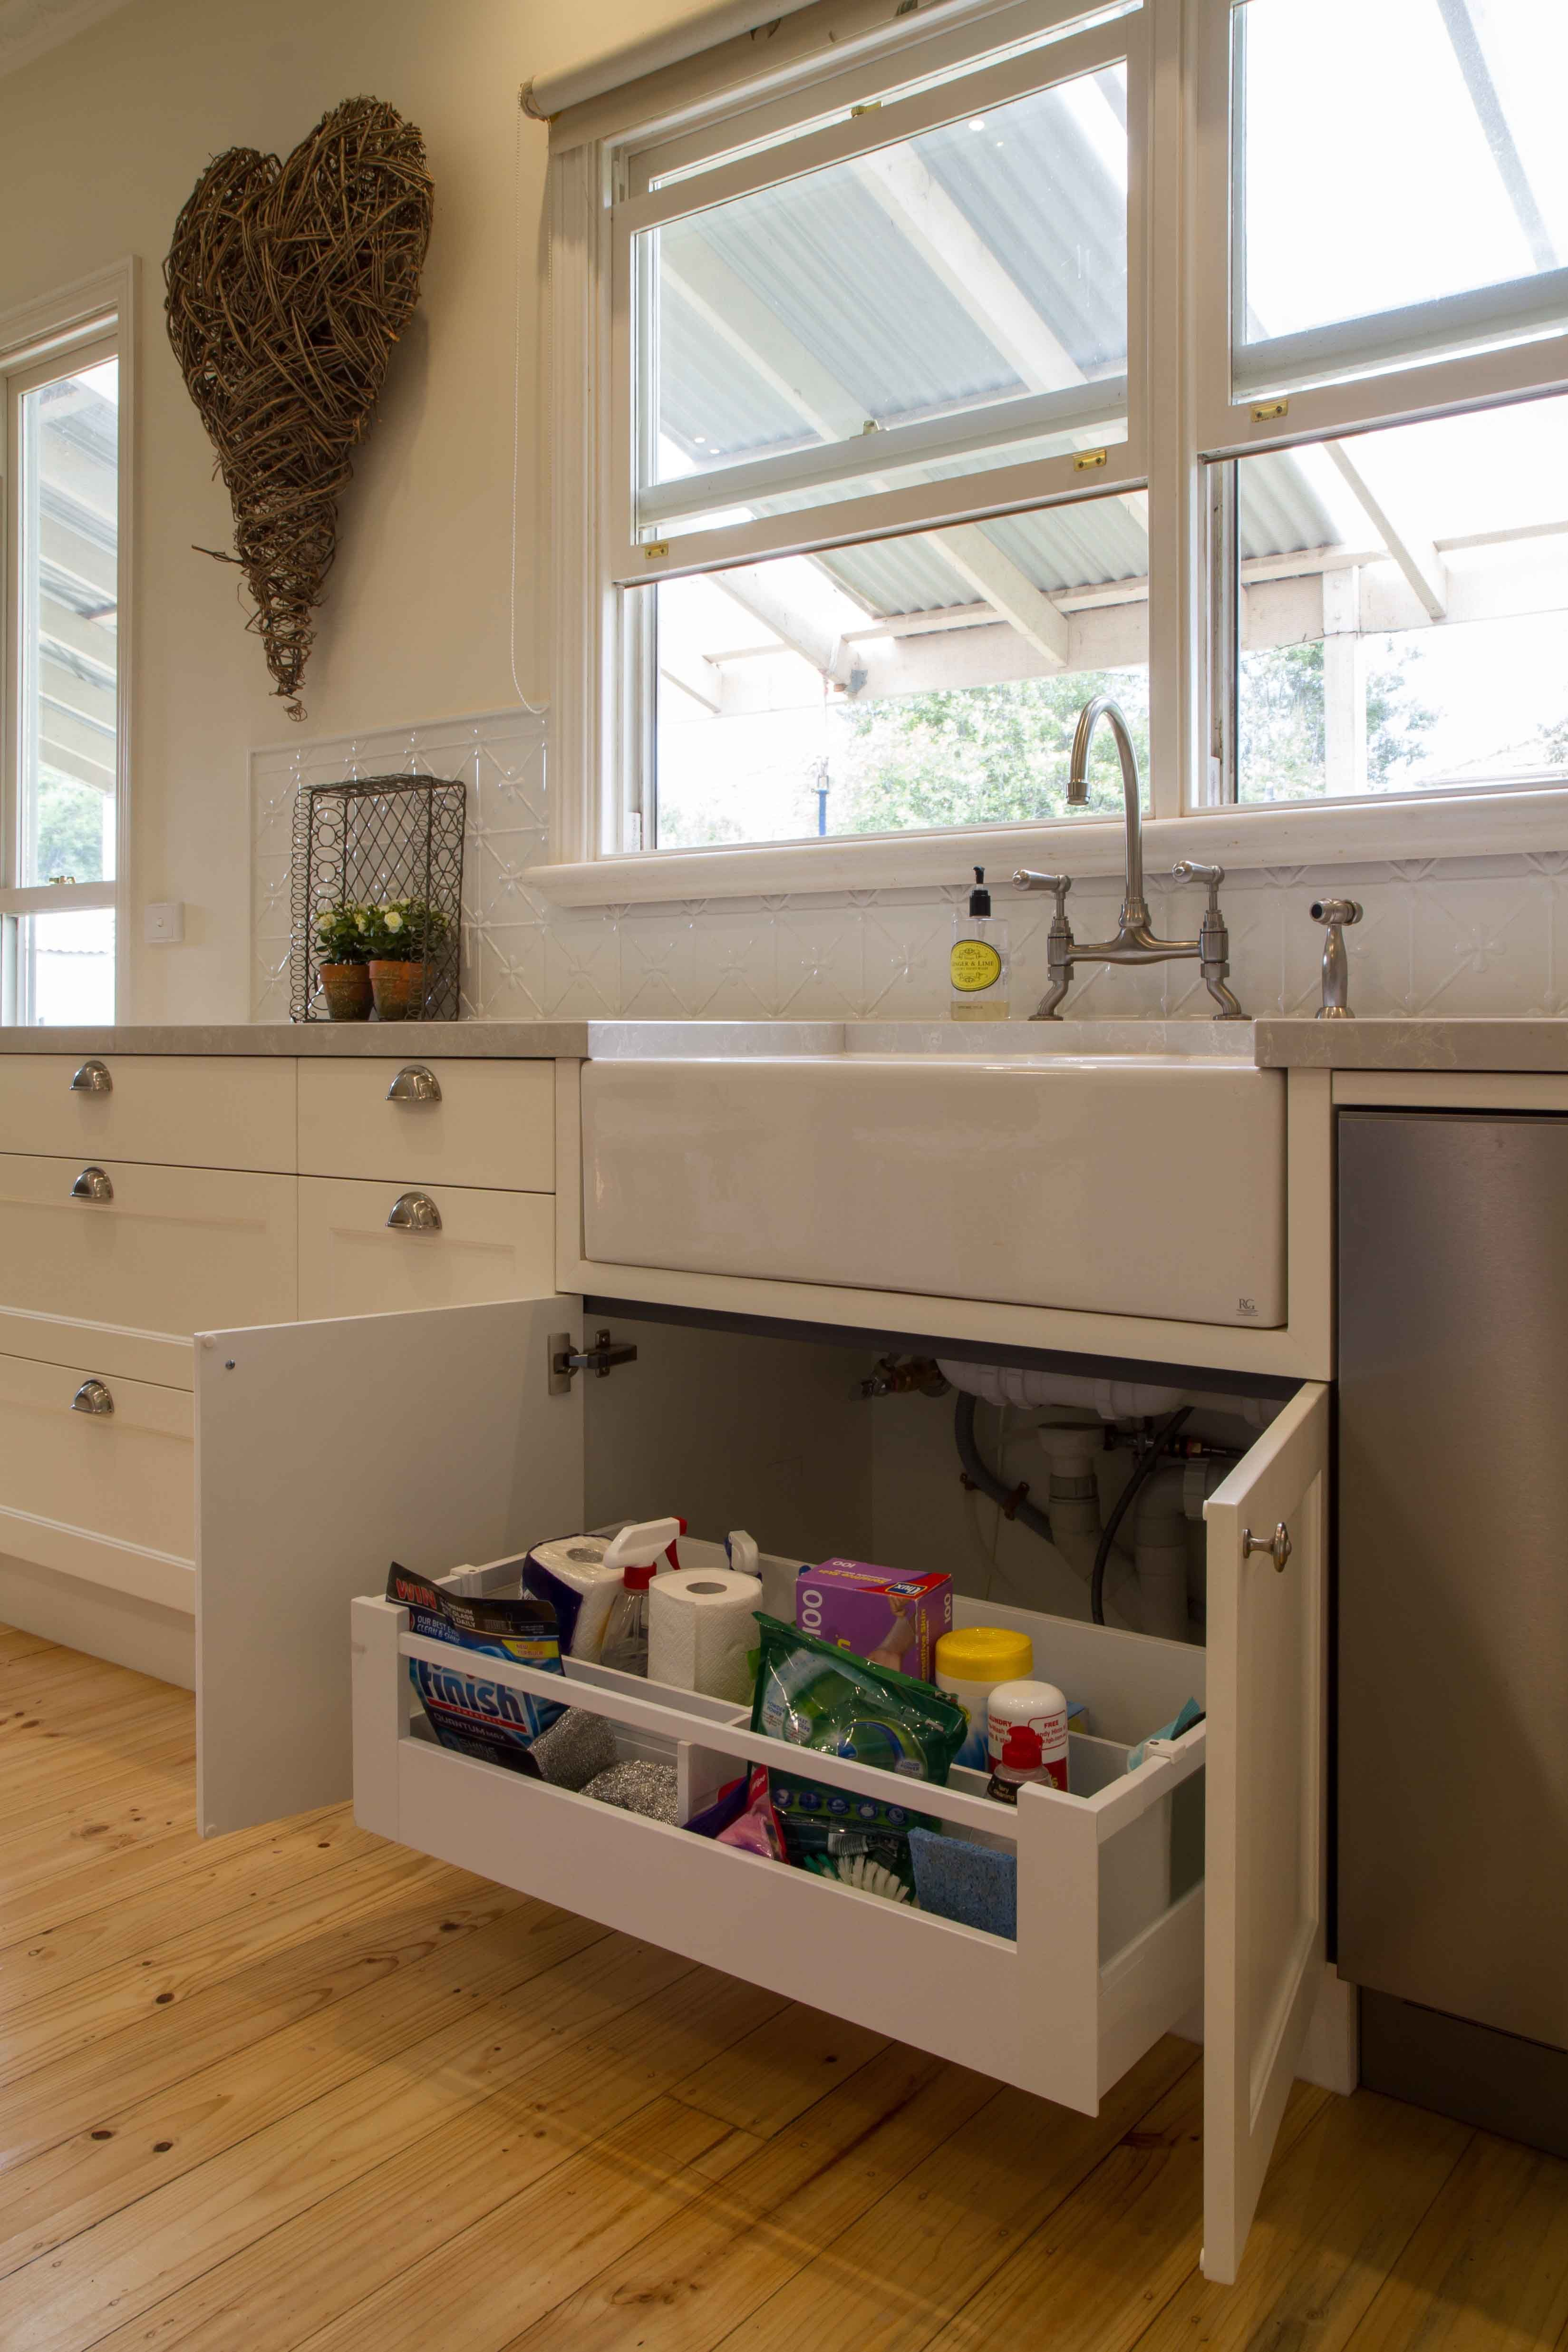 Love the sink and the pull out shelf in the cabinet under the sink